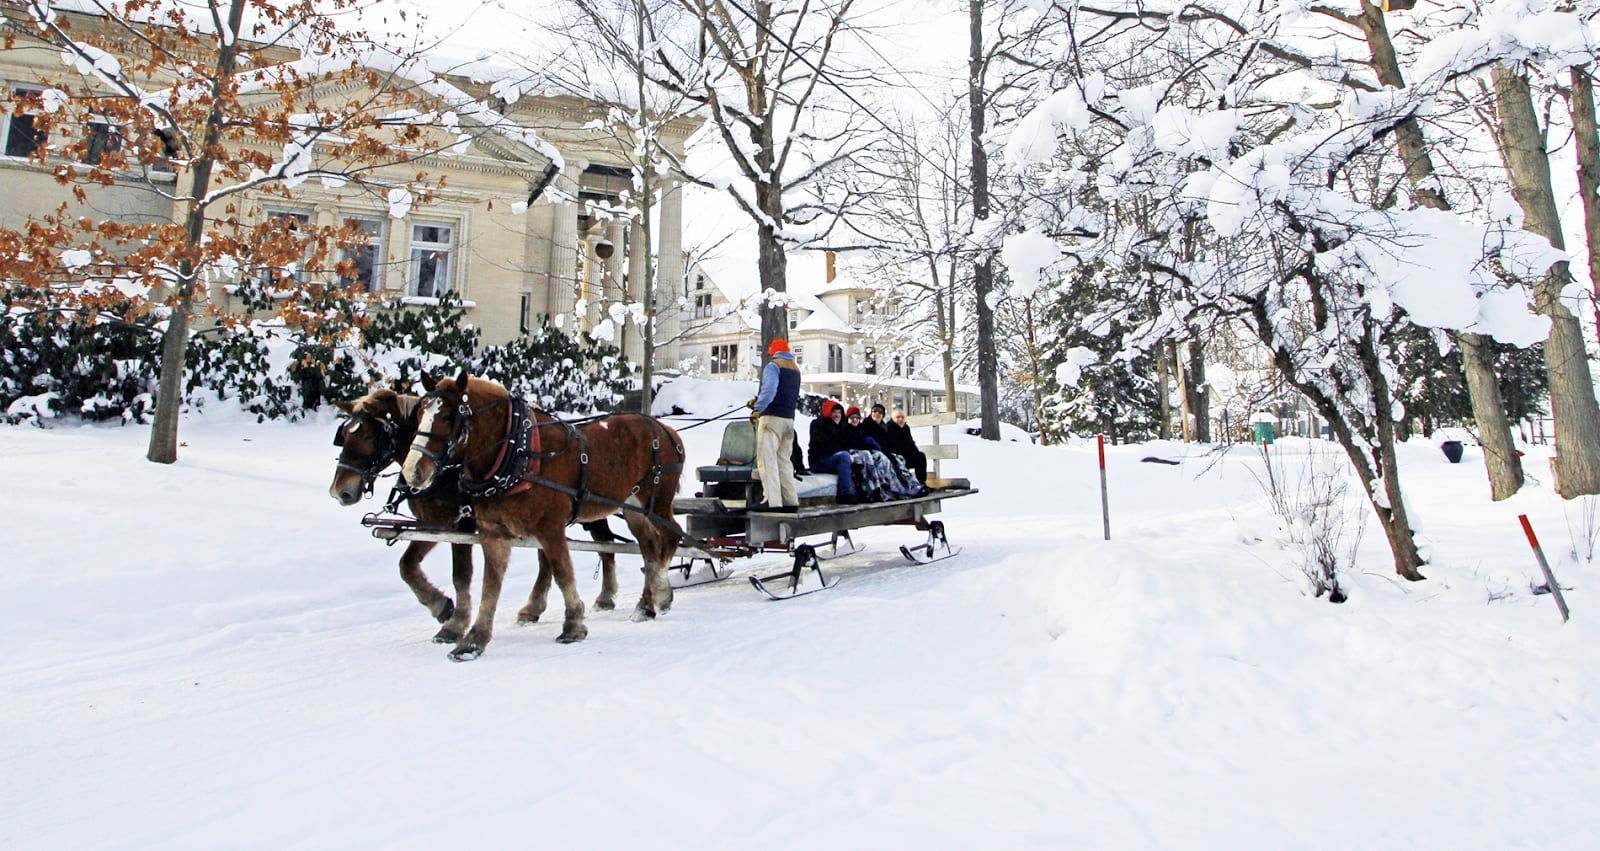 A horse-drawn sled ride through picturesque Chautauqua